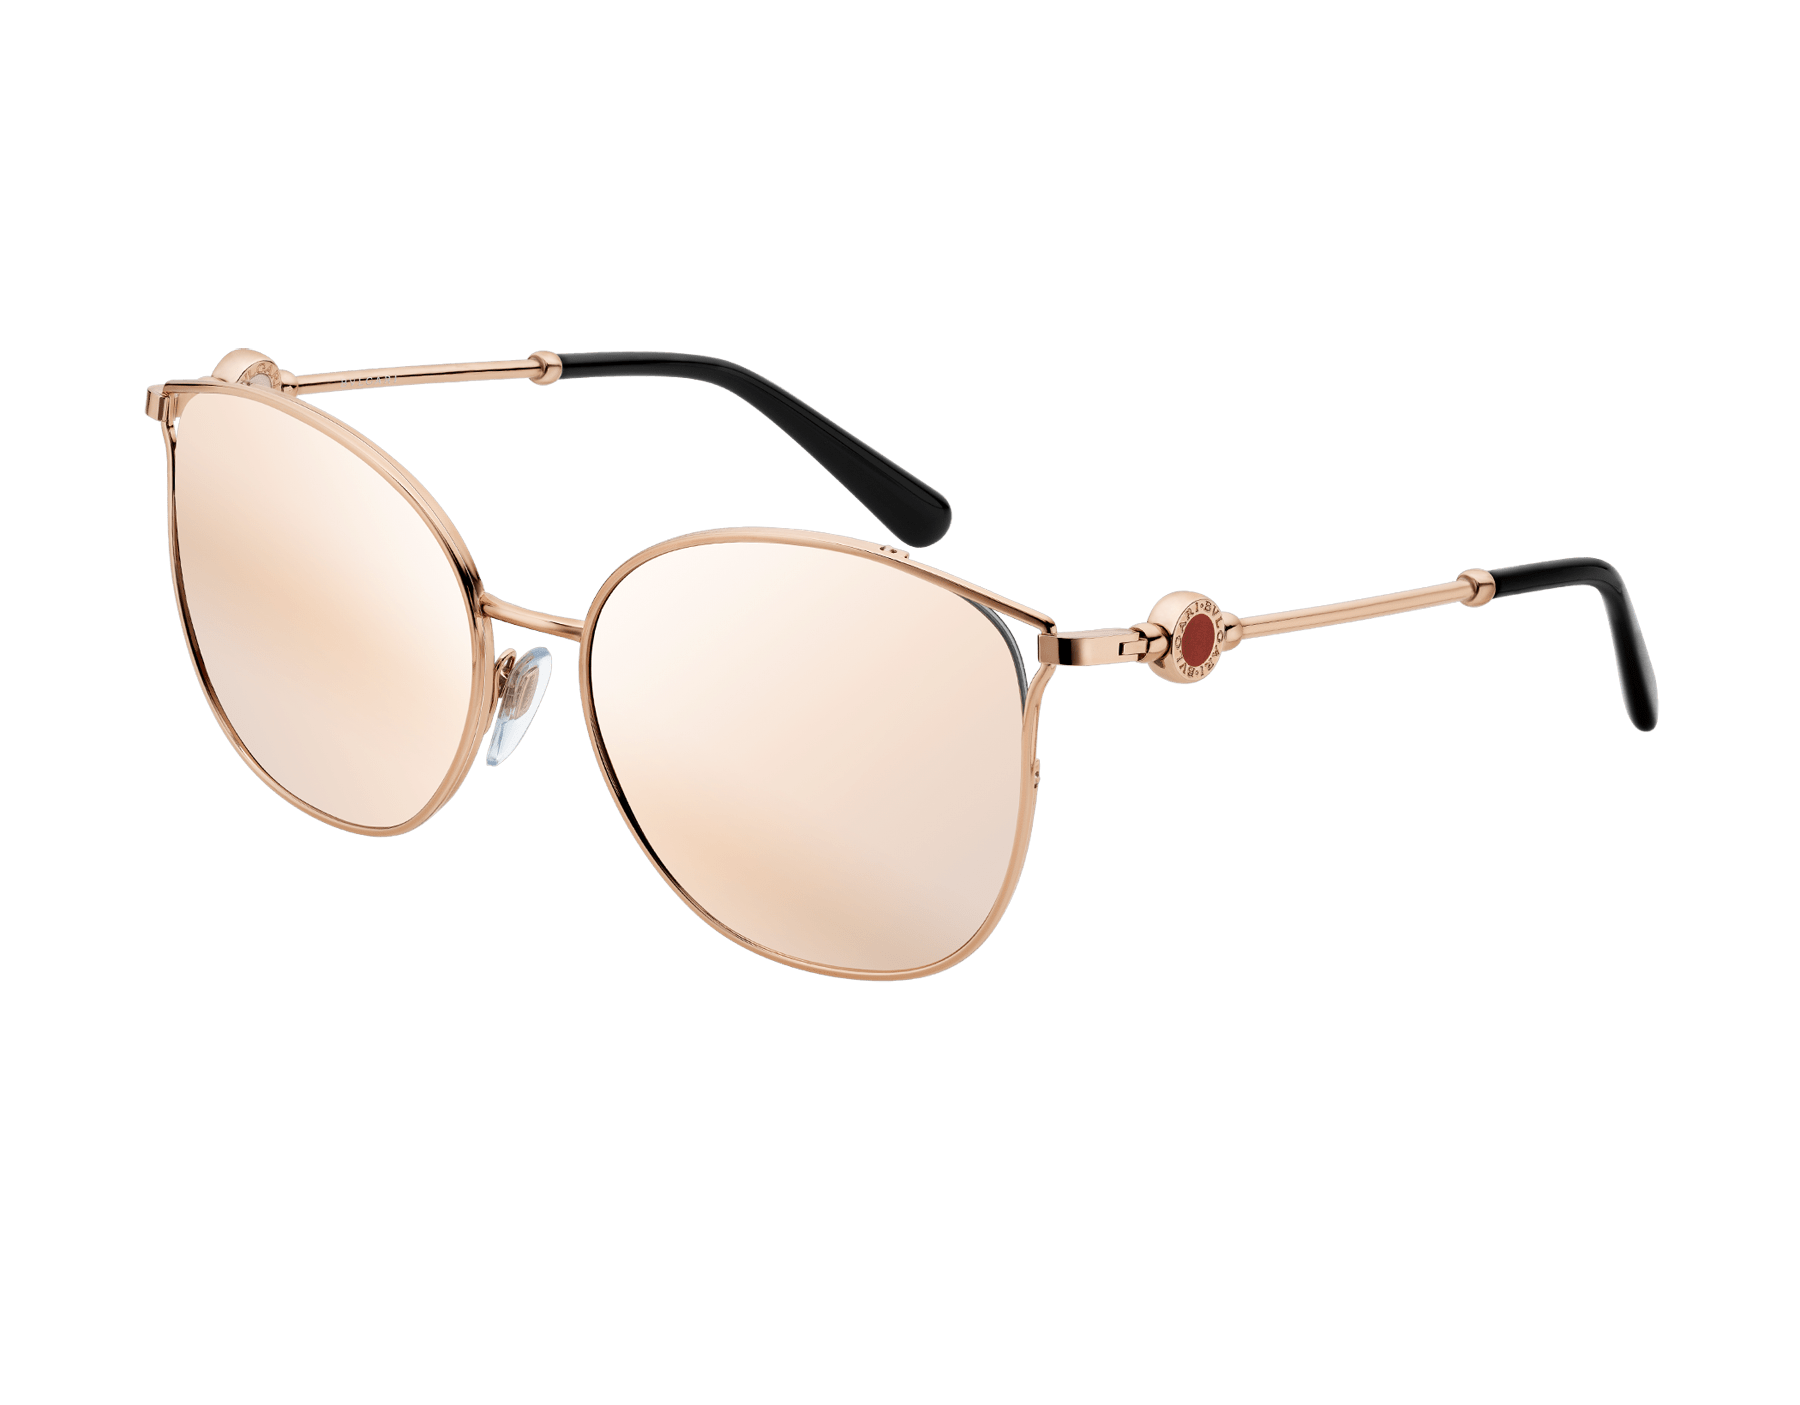 BVLGARI BVLGARI rounded cat-eye metal sunglasses 903665 image 1